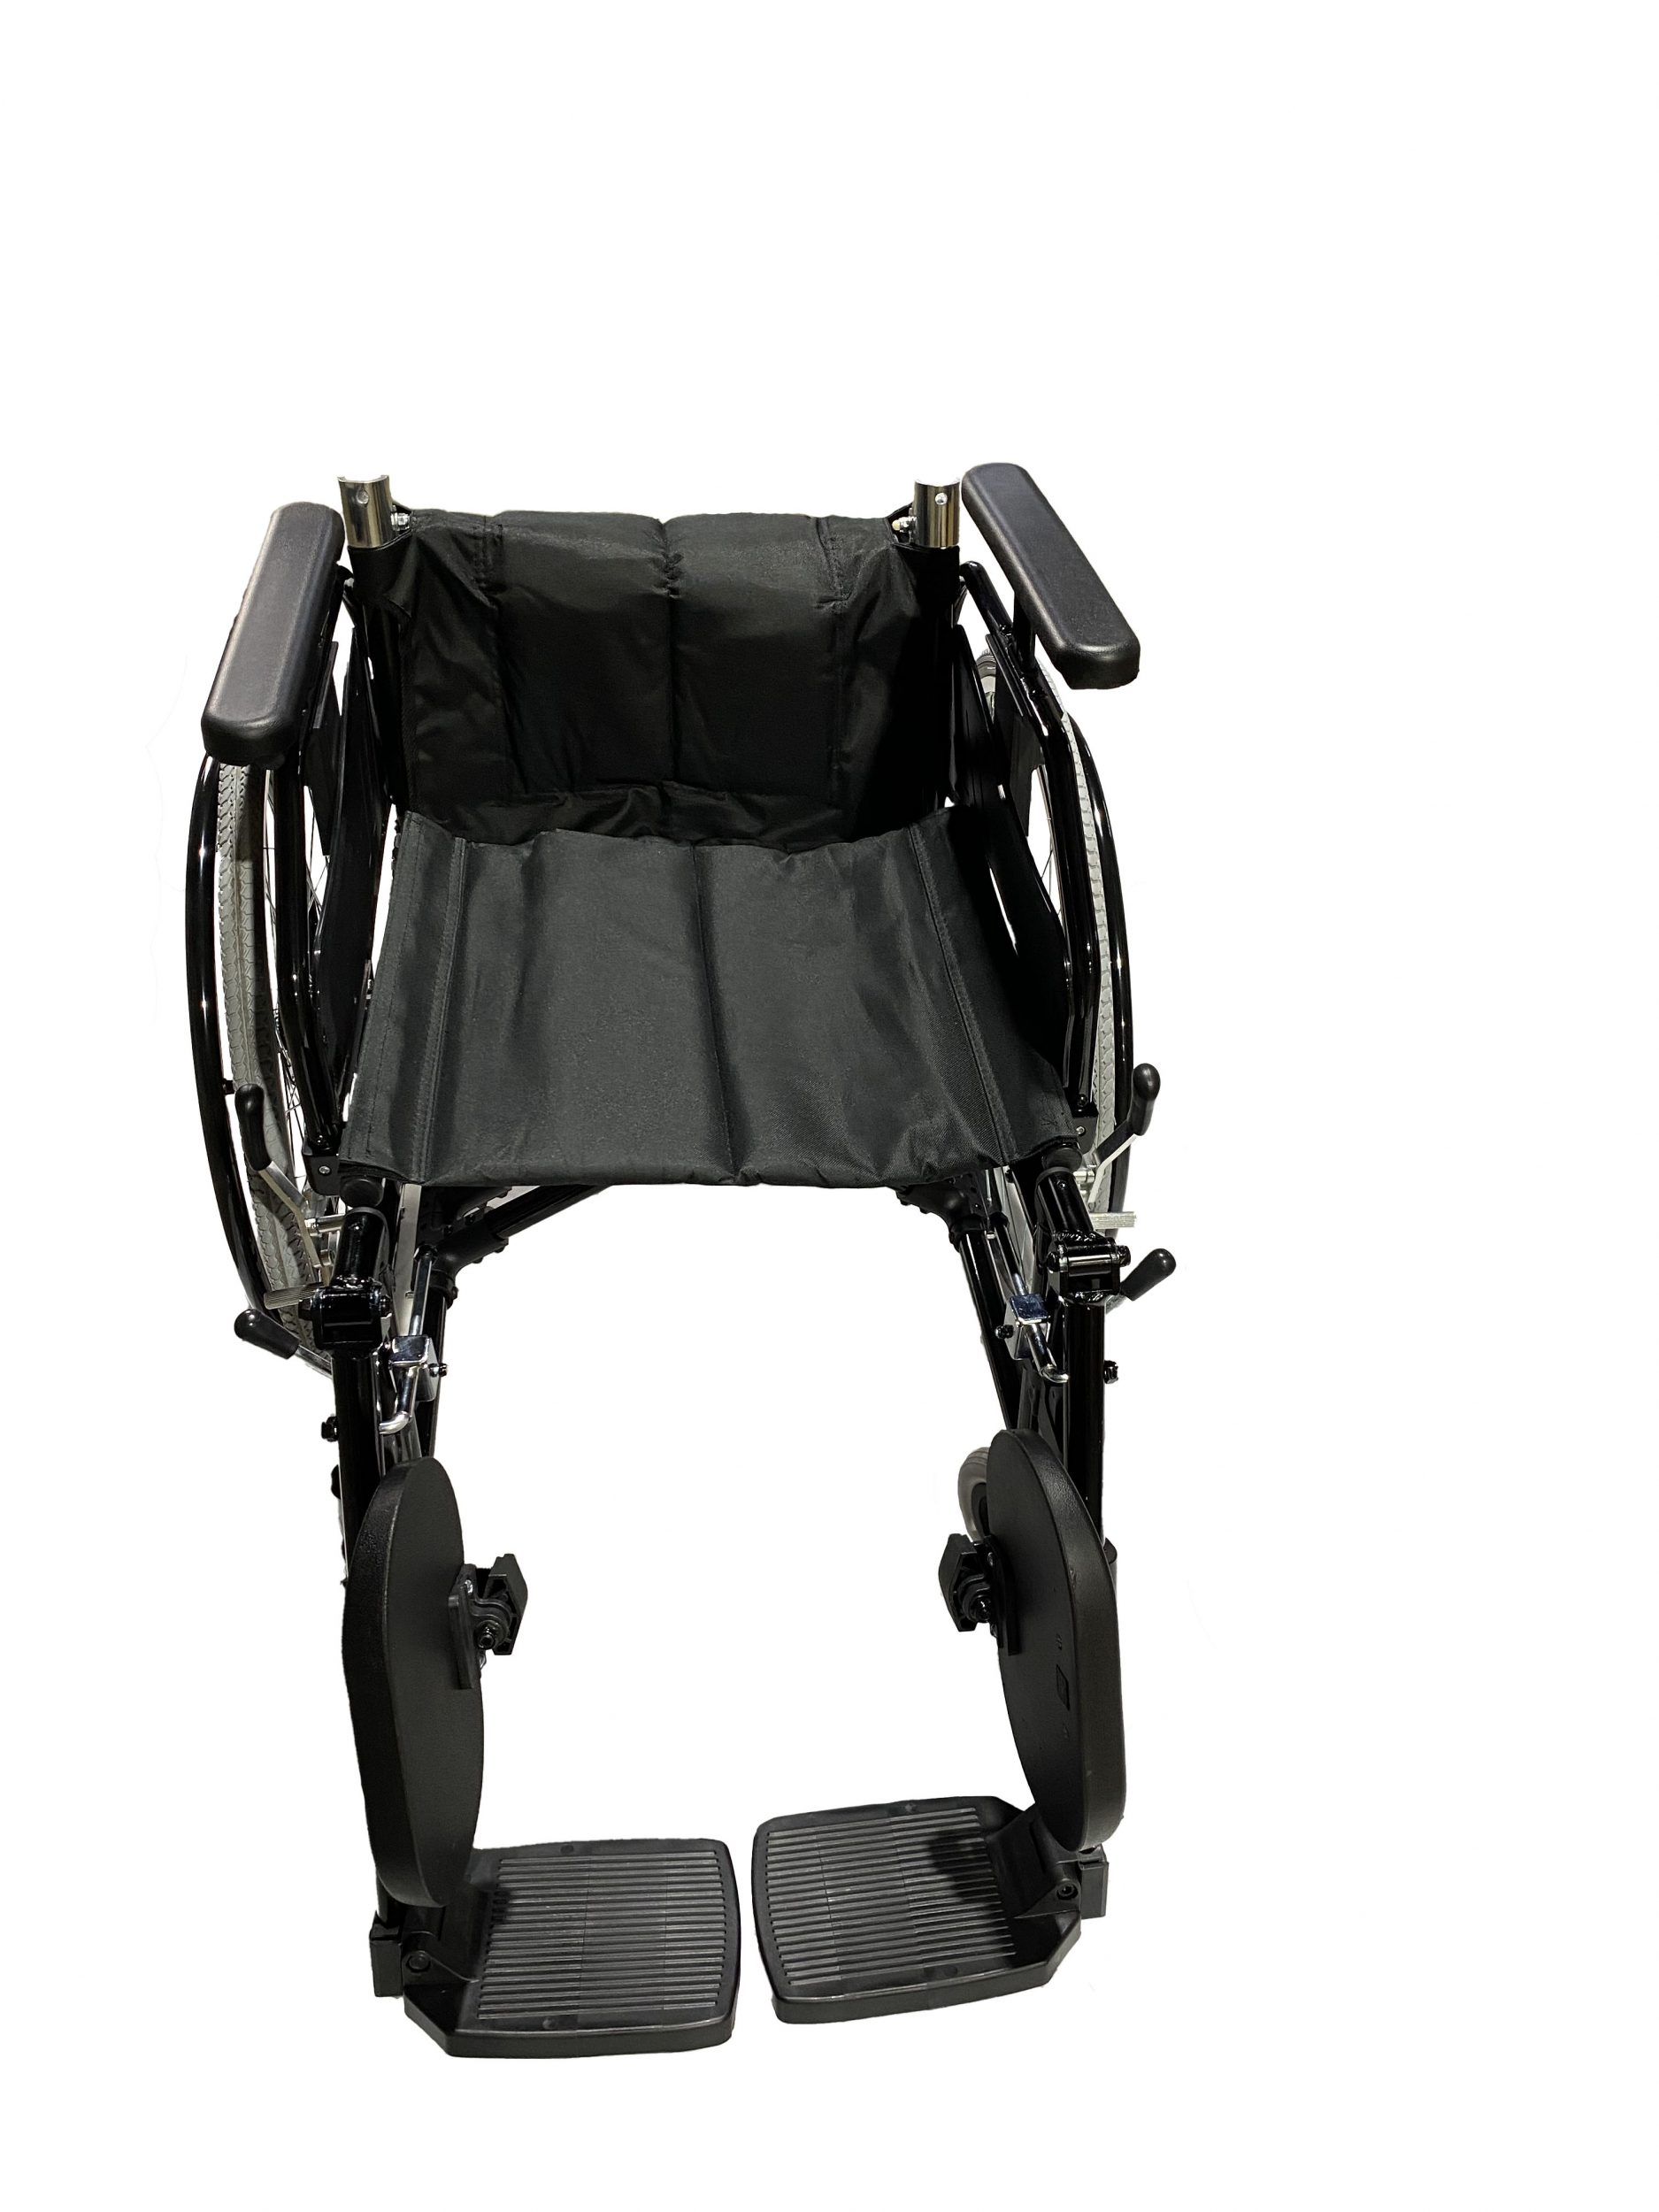 Most customisable foldable manual wheelchair